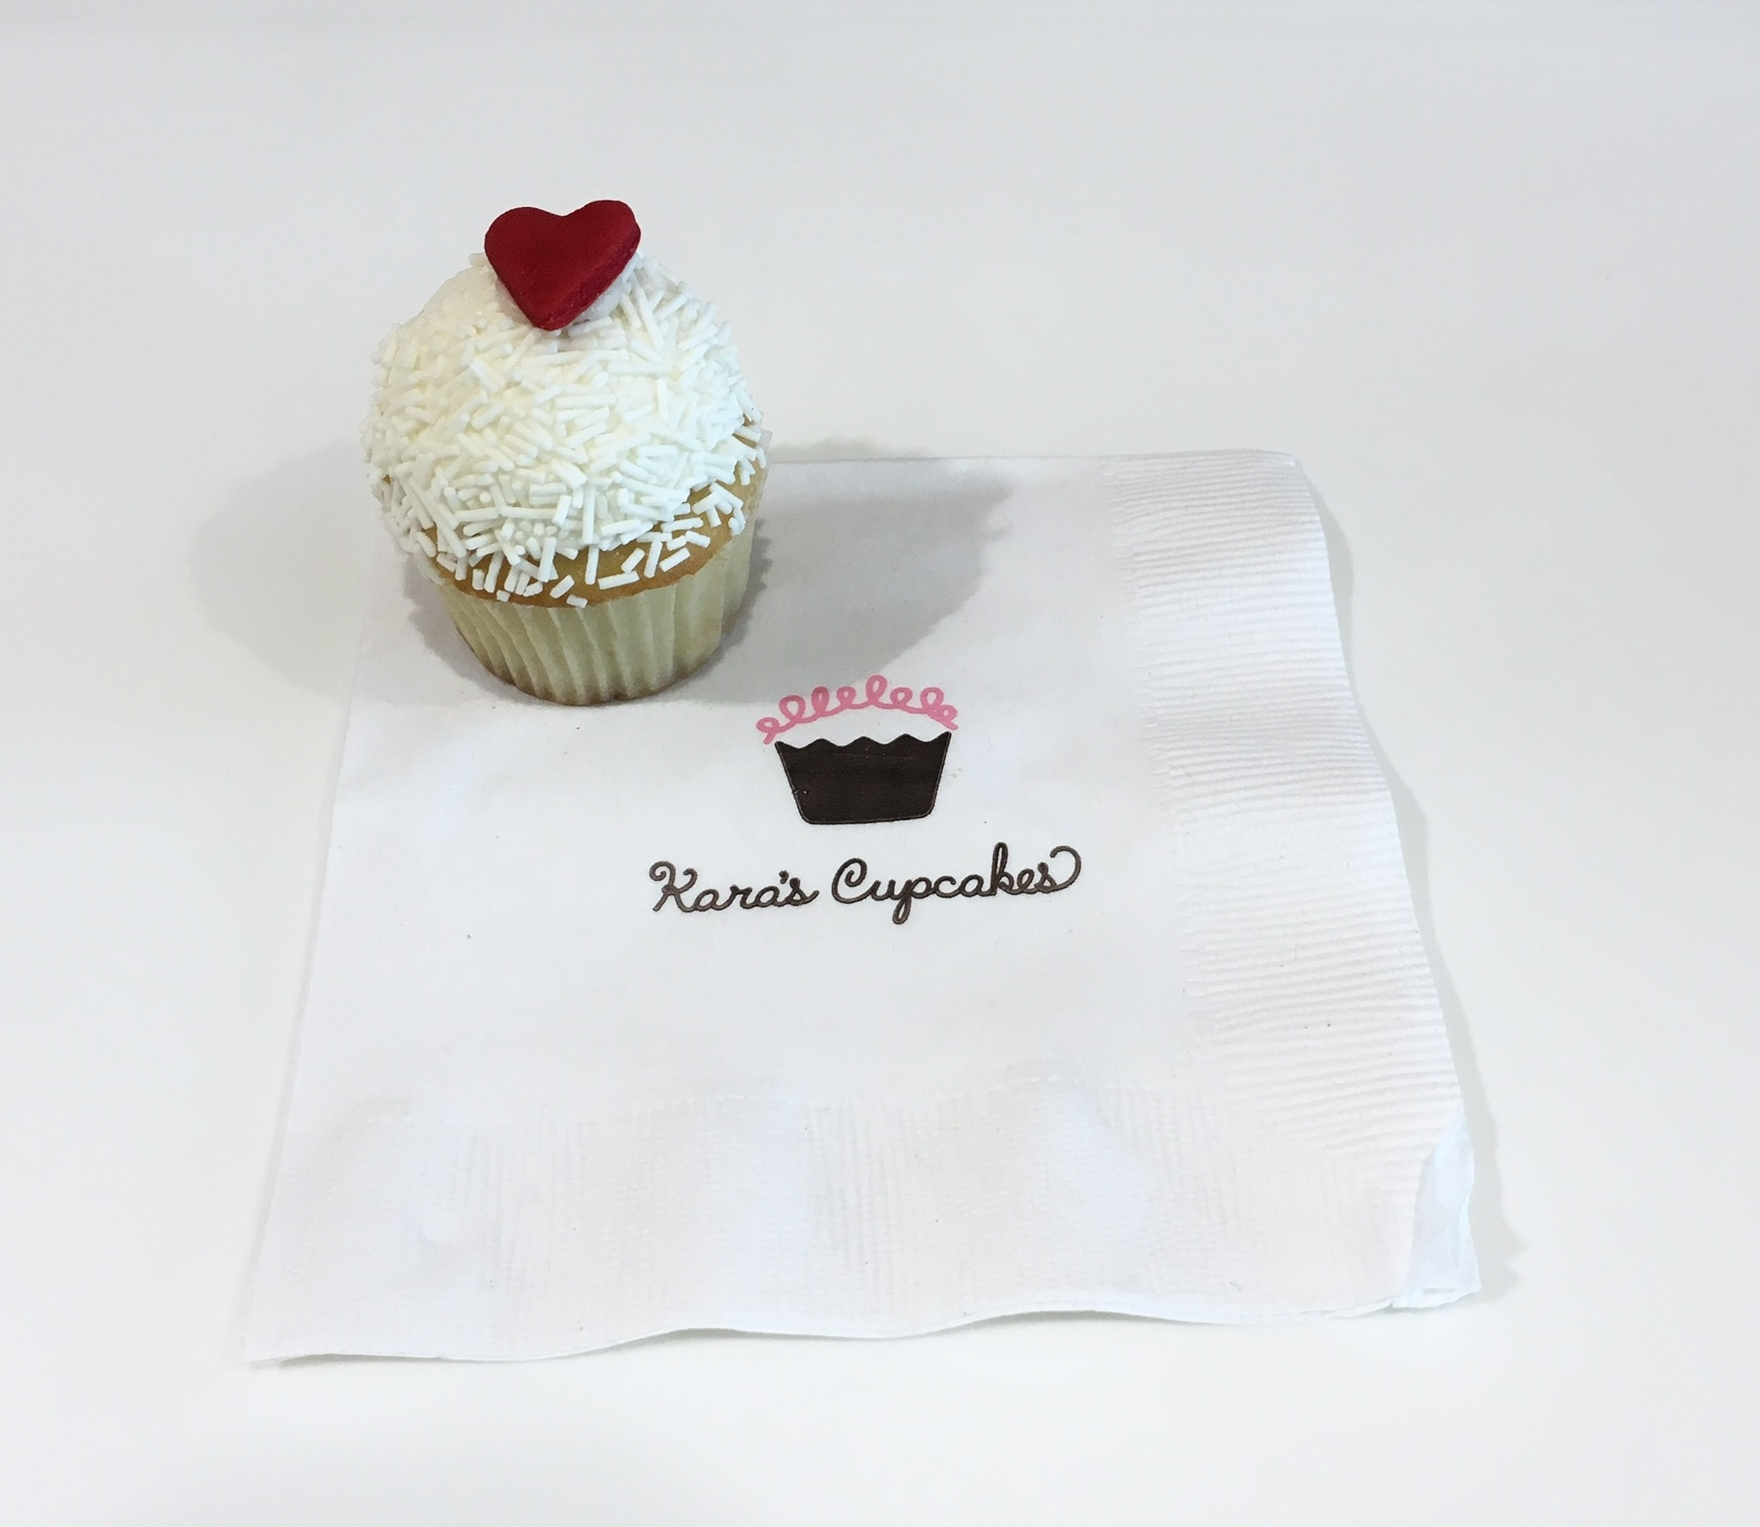 Vanilla Sprinkle Cupcake with Heart Shaped Fondant from Kara's Cupcakes in San Francisco